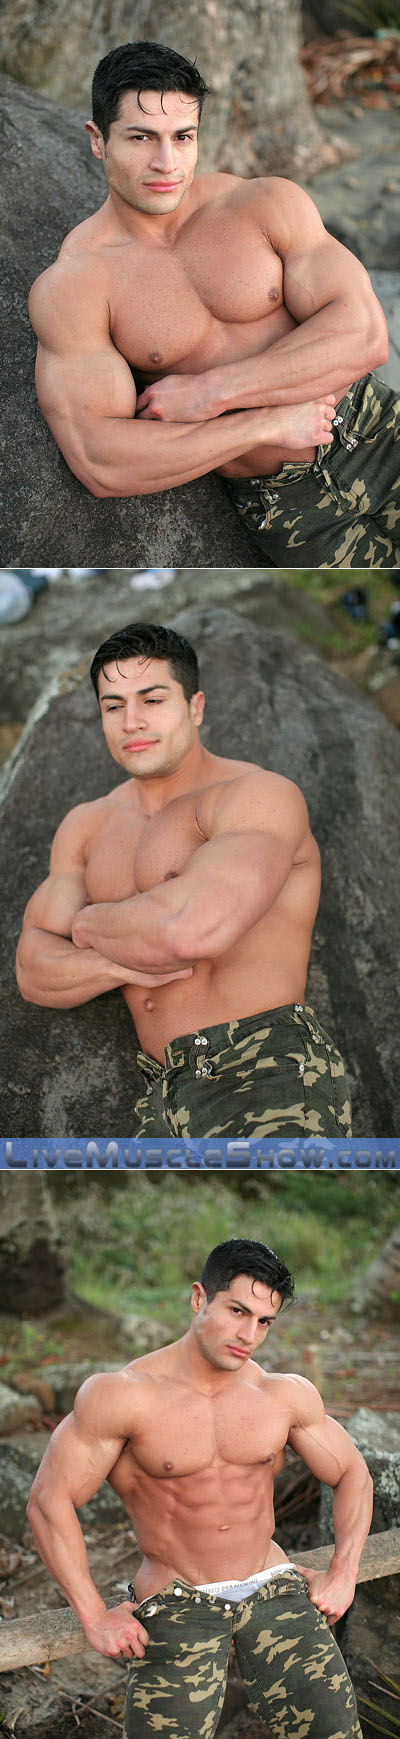 Huge Latin bodybuilder